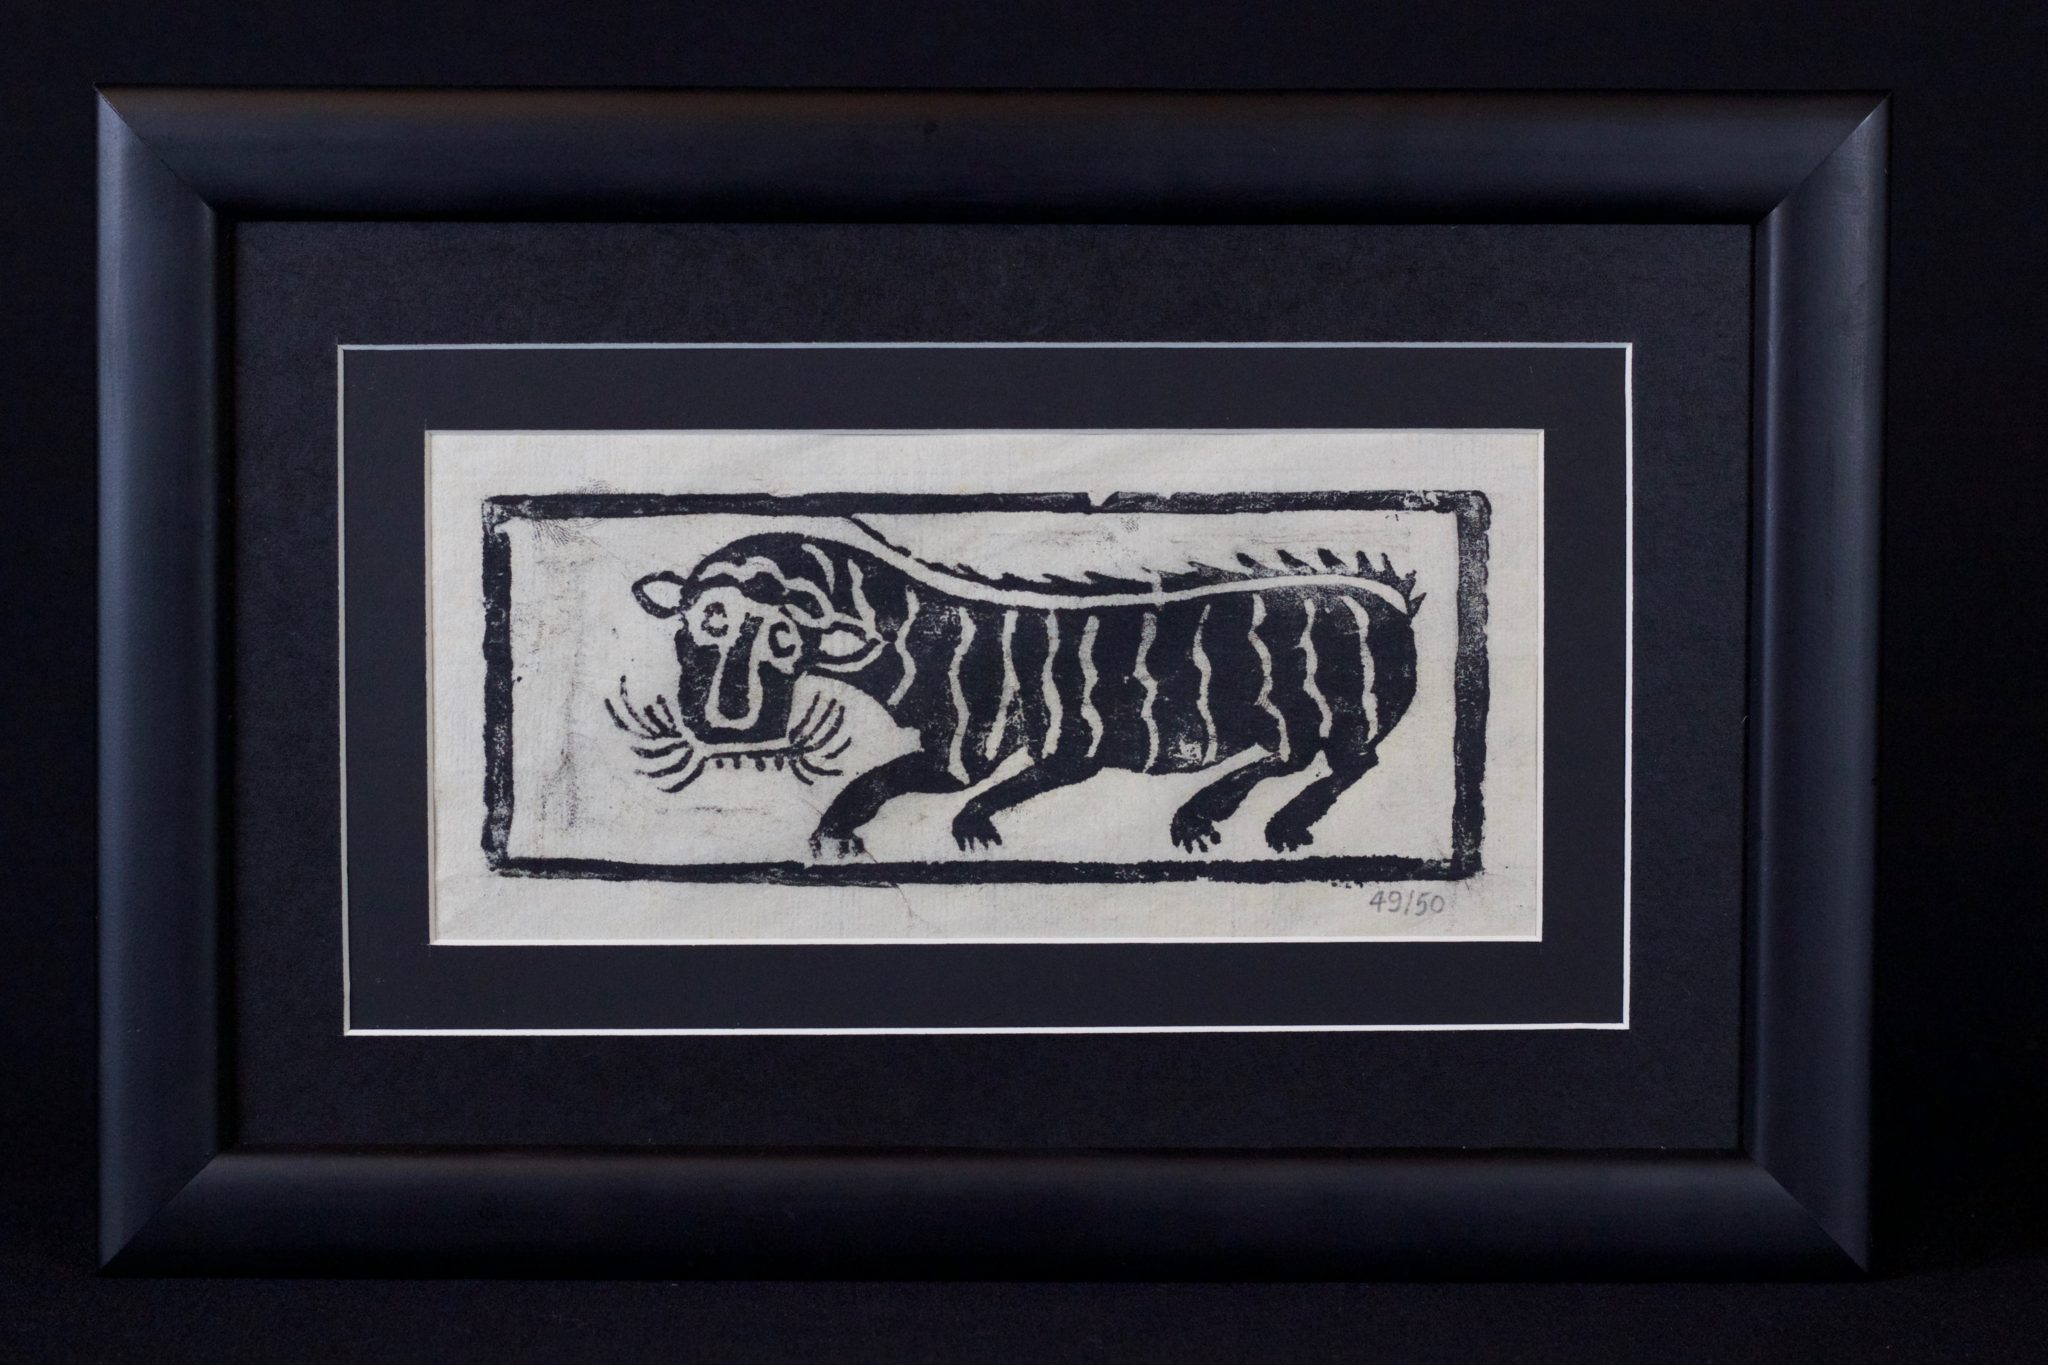 "Shamanic Print - Tiger, Vietnam Dao Lo Gang people, Contemporary, Pigment printed on handmade *Do paper from a hand carved, wooden shamanic printing block The print would be burned for carting a message to deities for protecting people against evil spirits. *Do is made from the bark of Rhamnoneuron balansae. 8"" x 12"" x ¾"", $55."